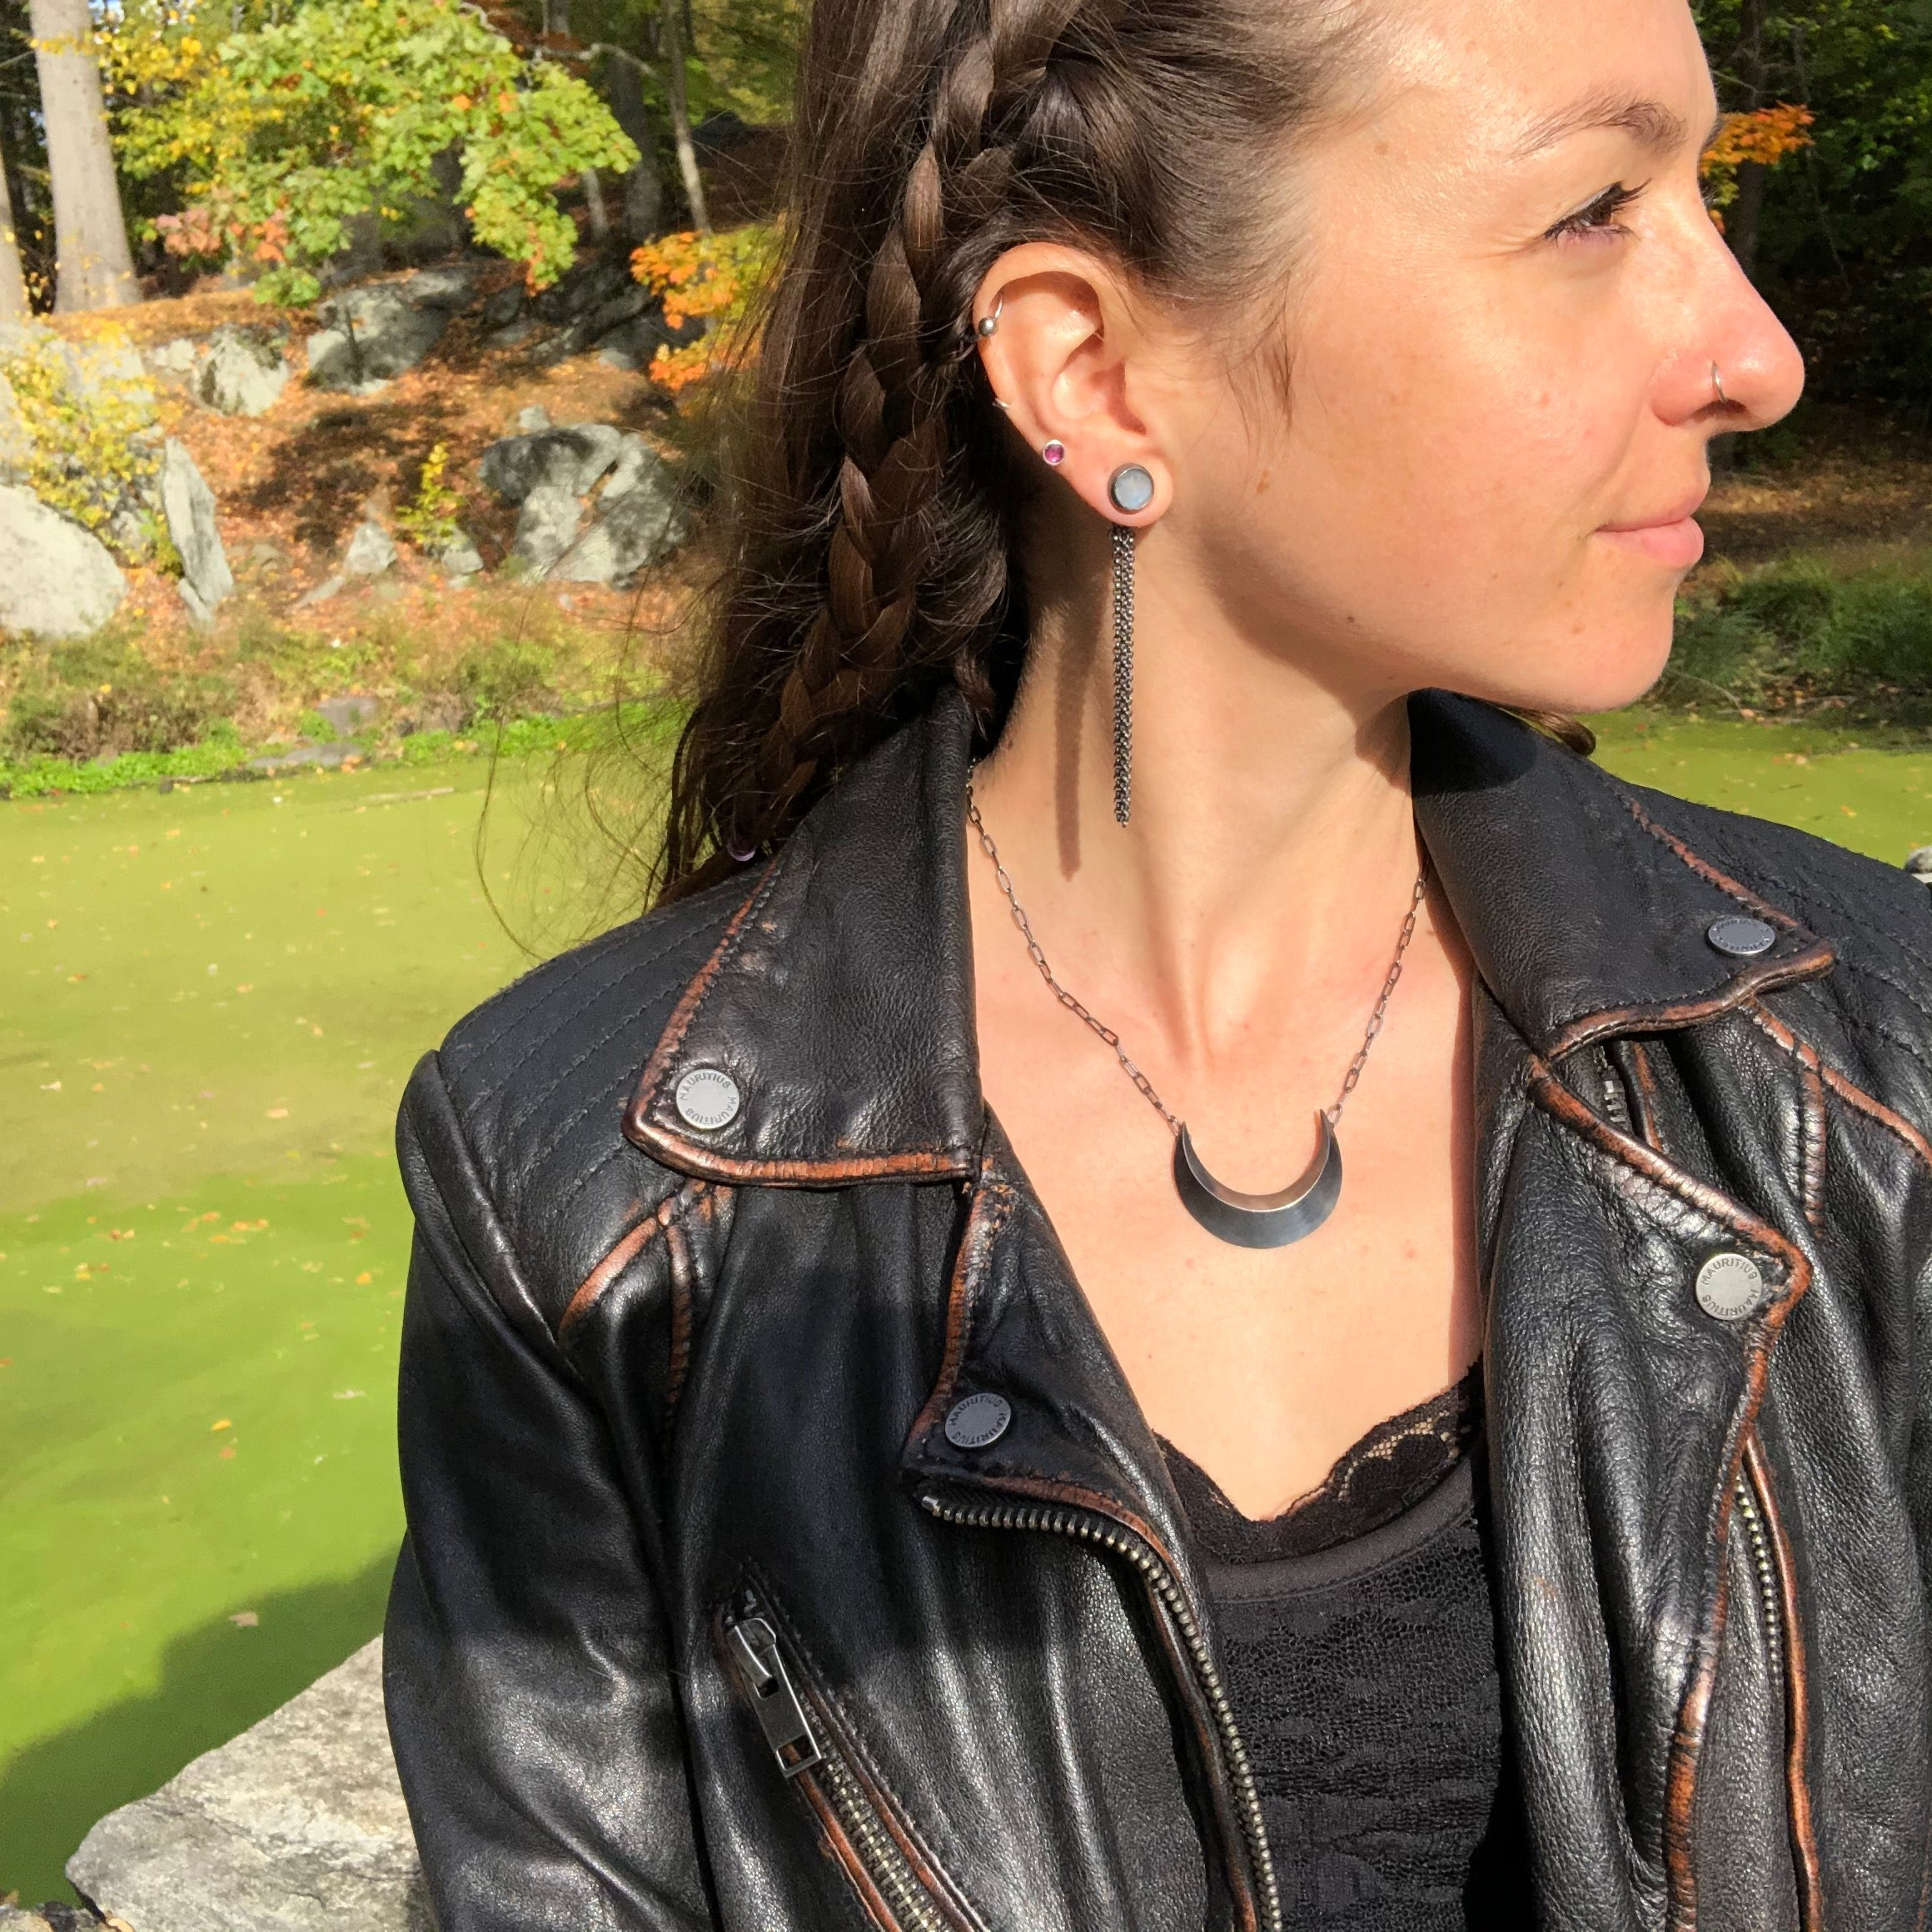 Oxidized sterling silver Crescent Moon Necklace.  Handmade by Alex Lozier Jewelry.  Season of the Witch collection.